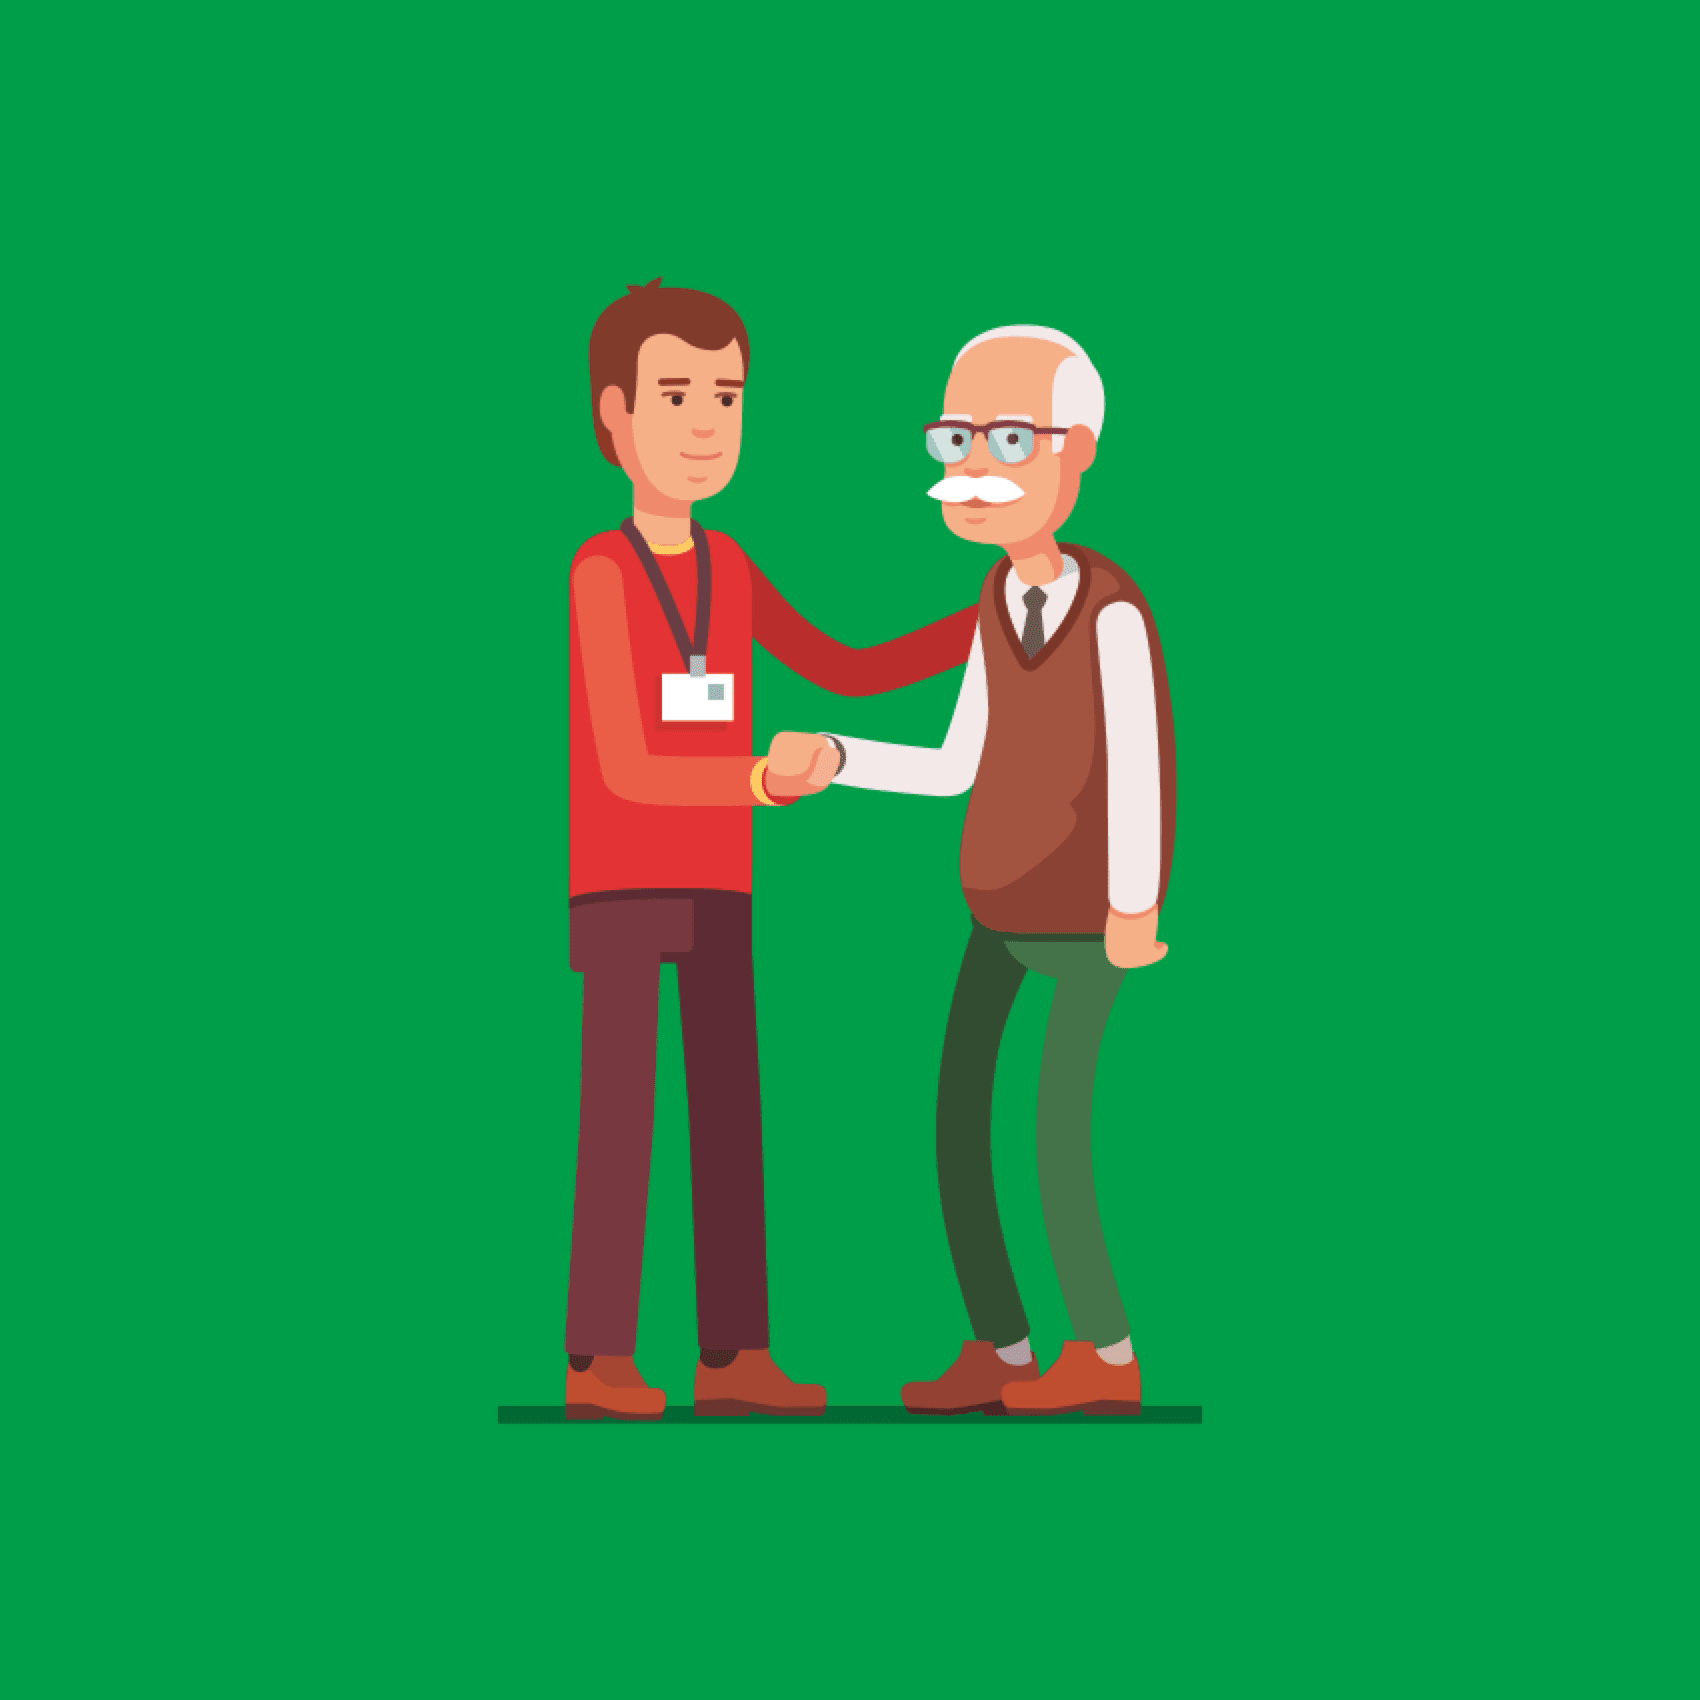 Welbeing helping hand illustration